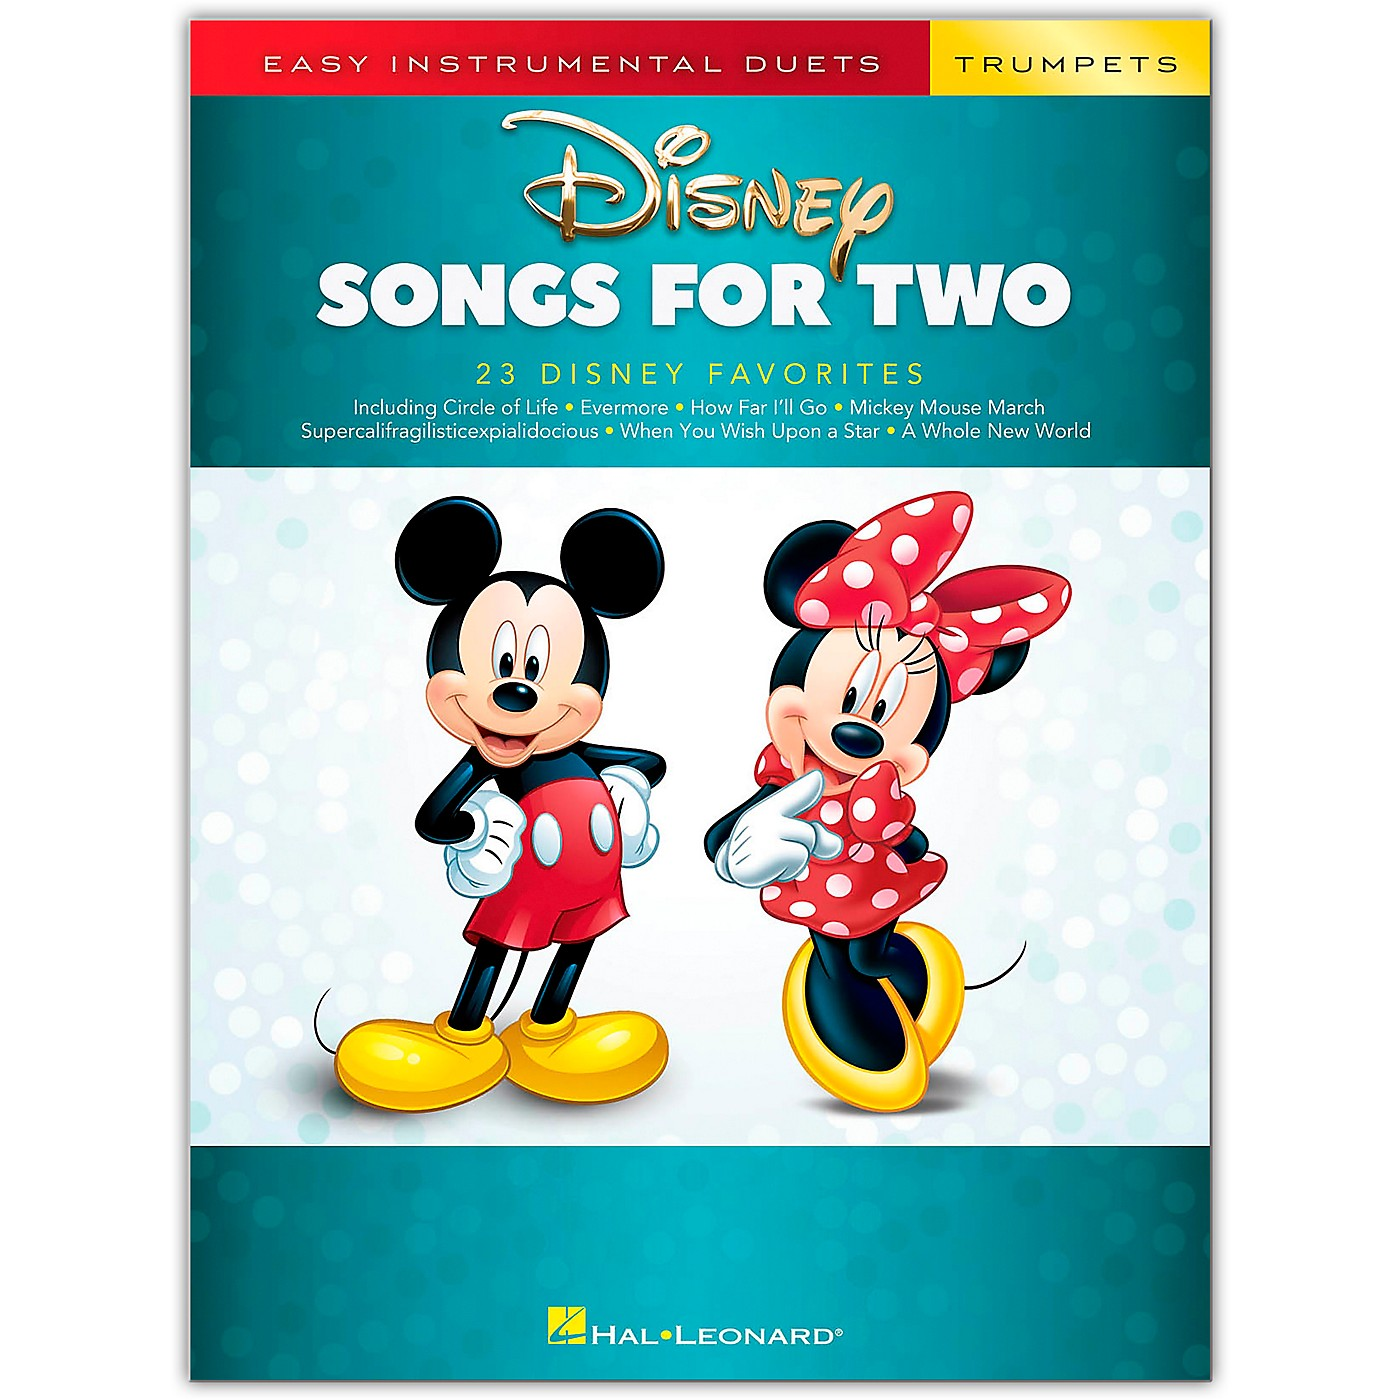 Hal Leonard Disney Songs for Two Trumpets - Easy Instrumental Duets Series Songbook thumbnail